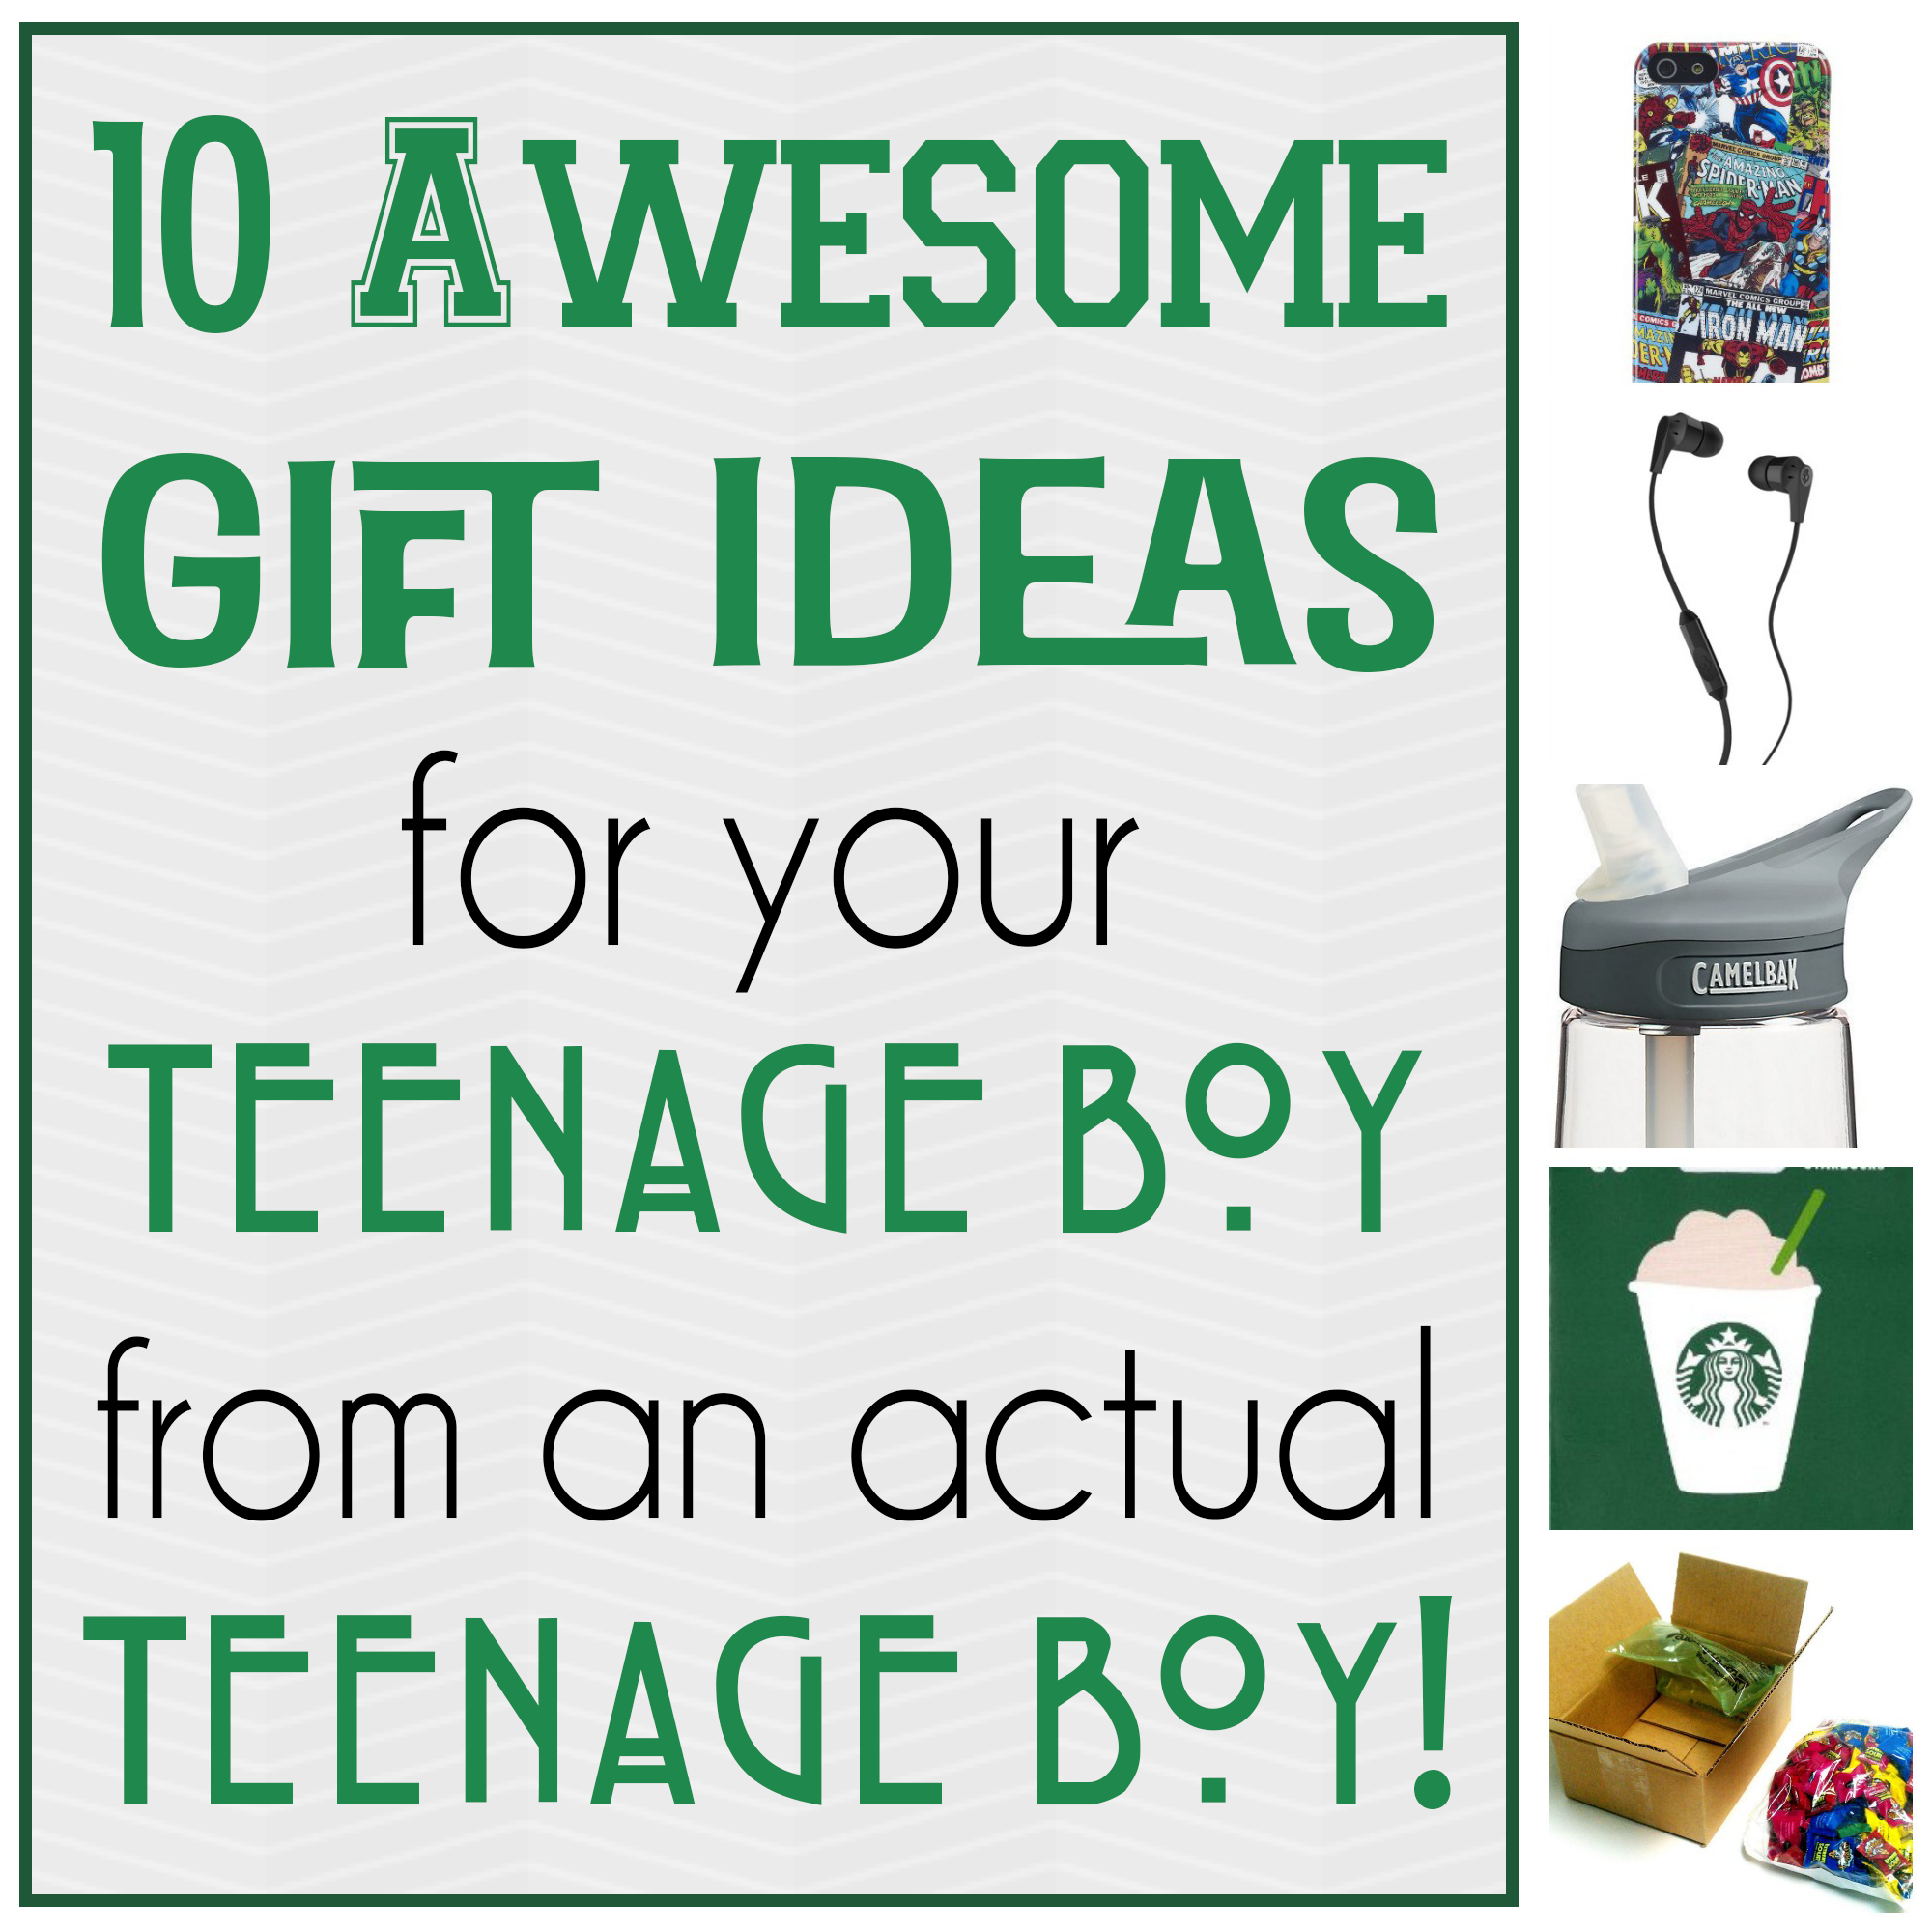 10 awesome christmas gift ideas for teenage boys from an actual teenage boy if you